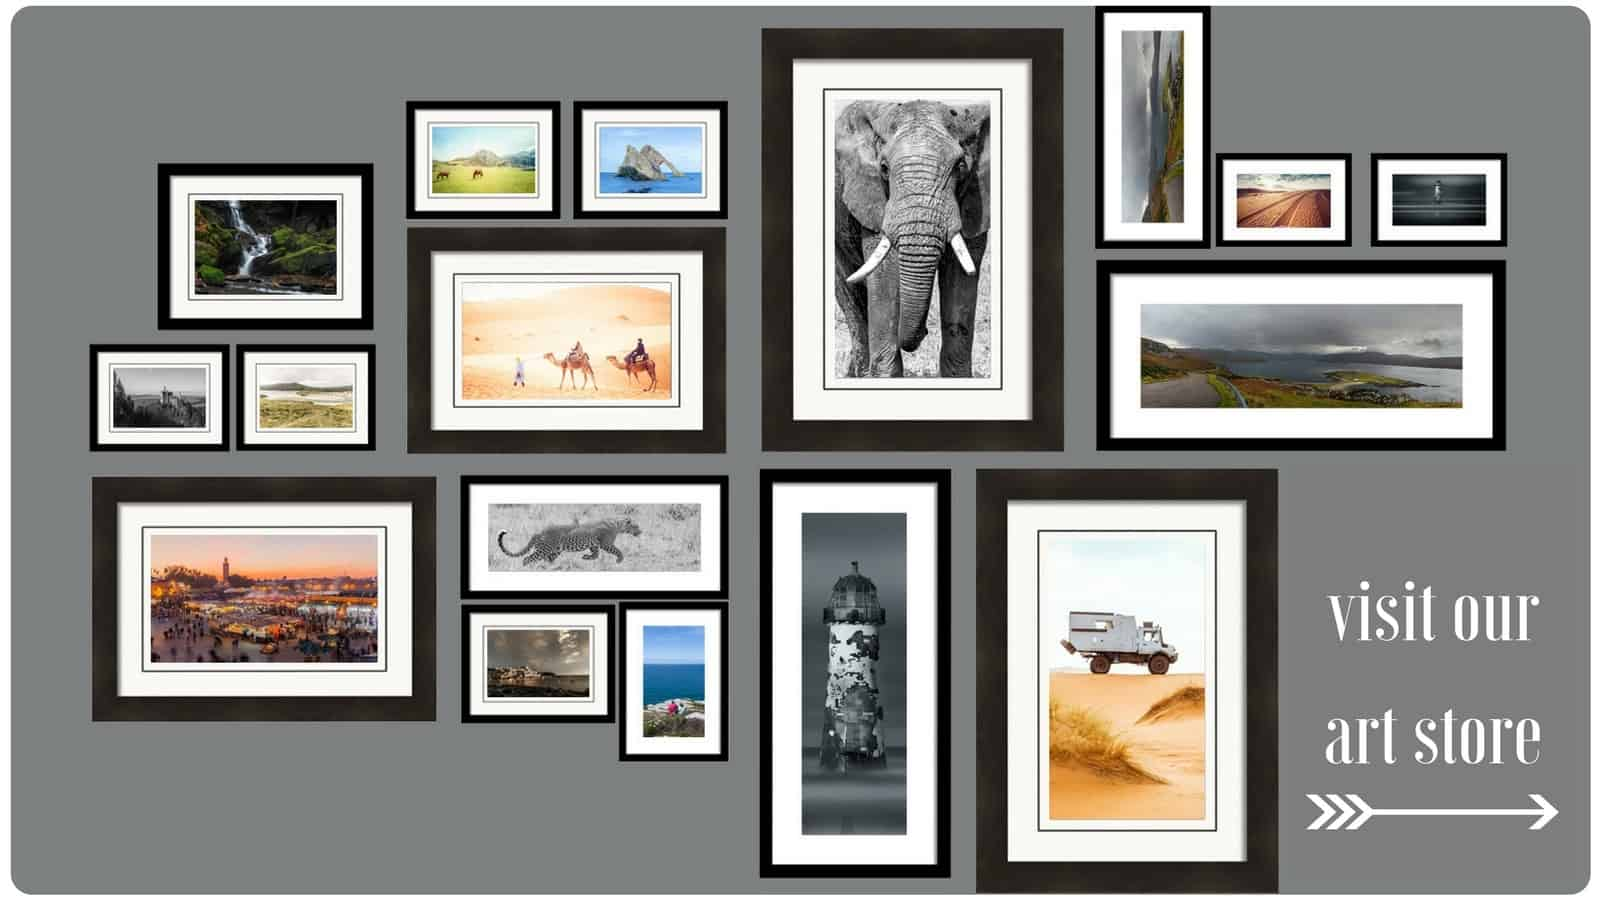 visit our art store - Mowgli Adventures